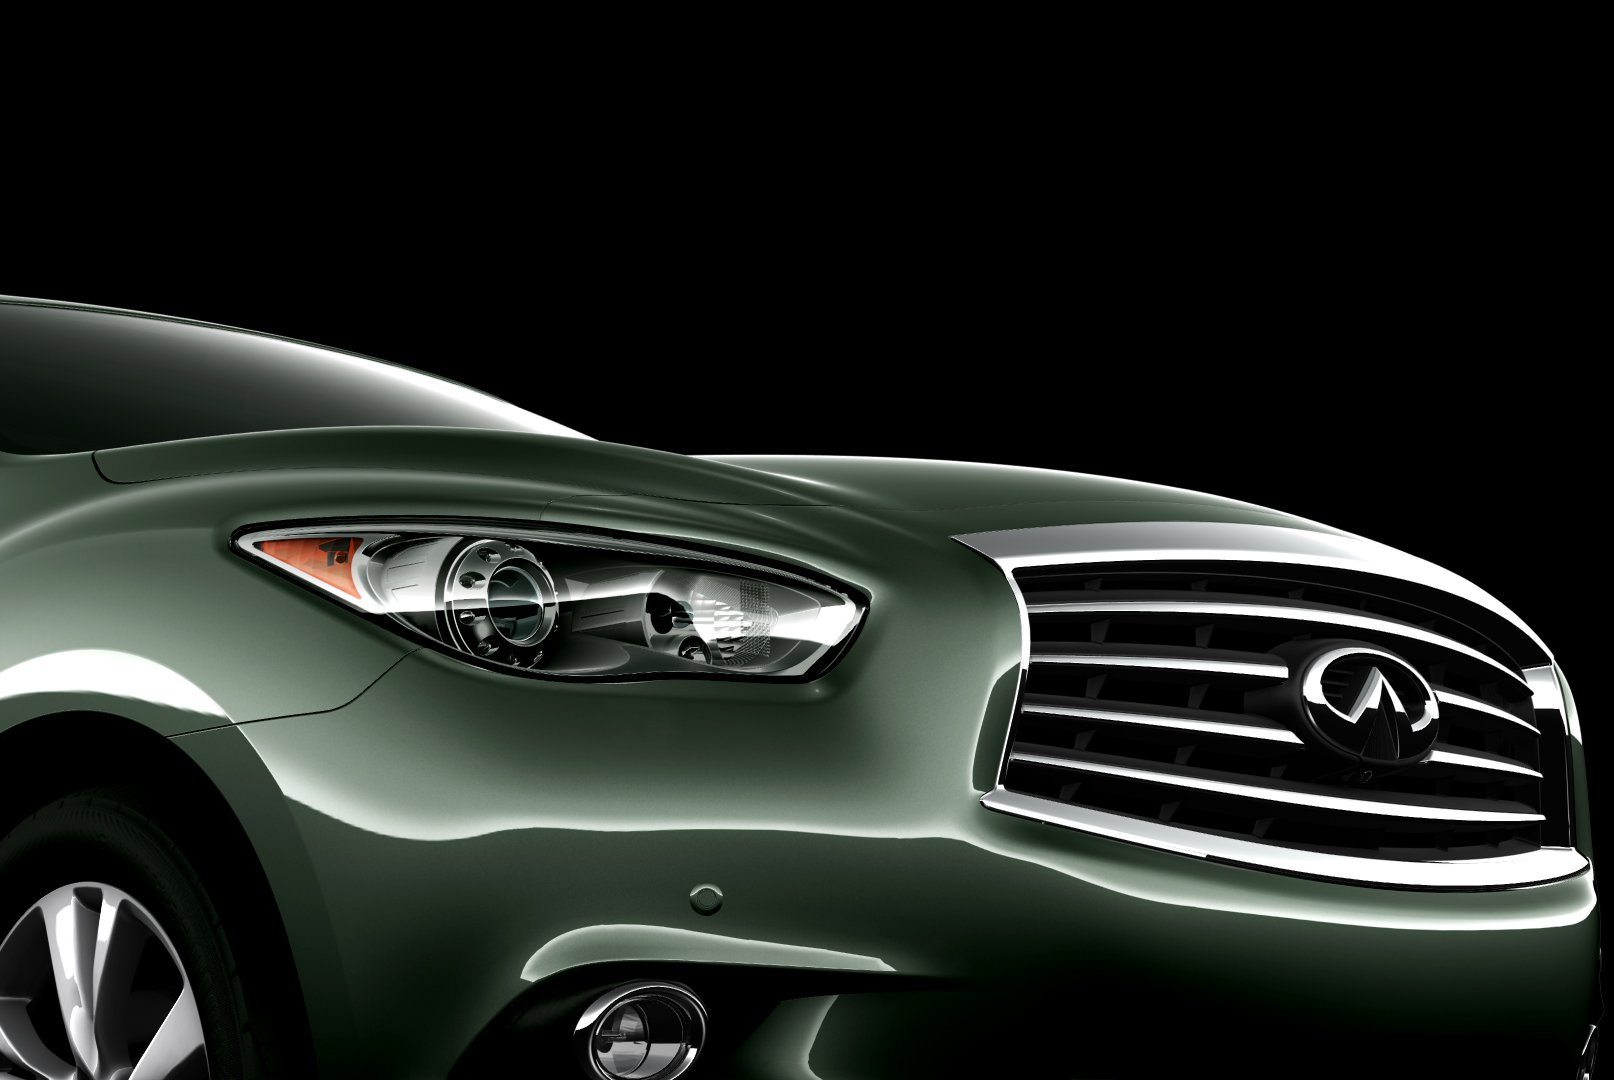 100 hot cars infiniti jx infiniti jx crossover concept teaser 6 vanachro Image collections